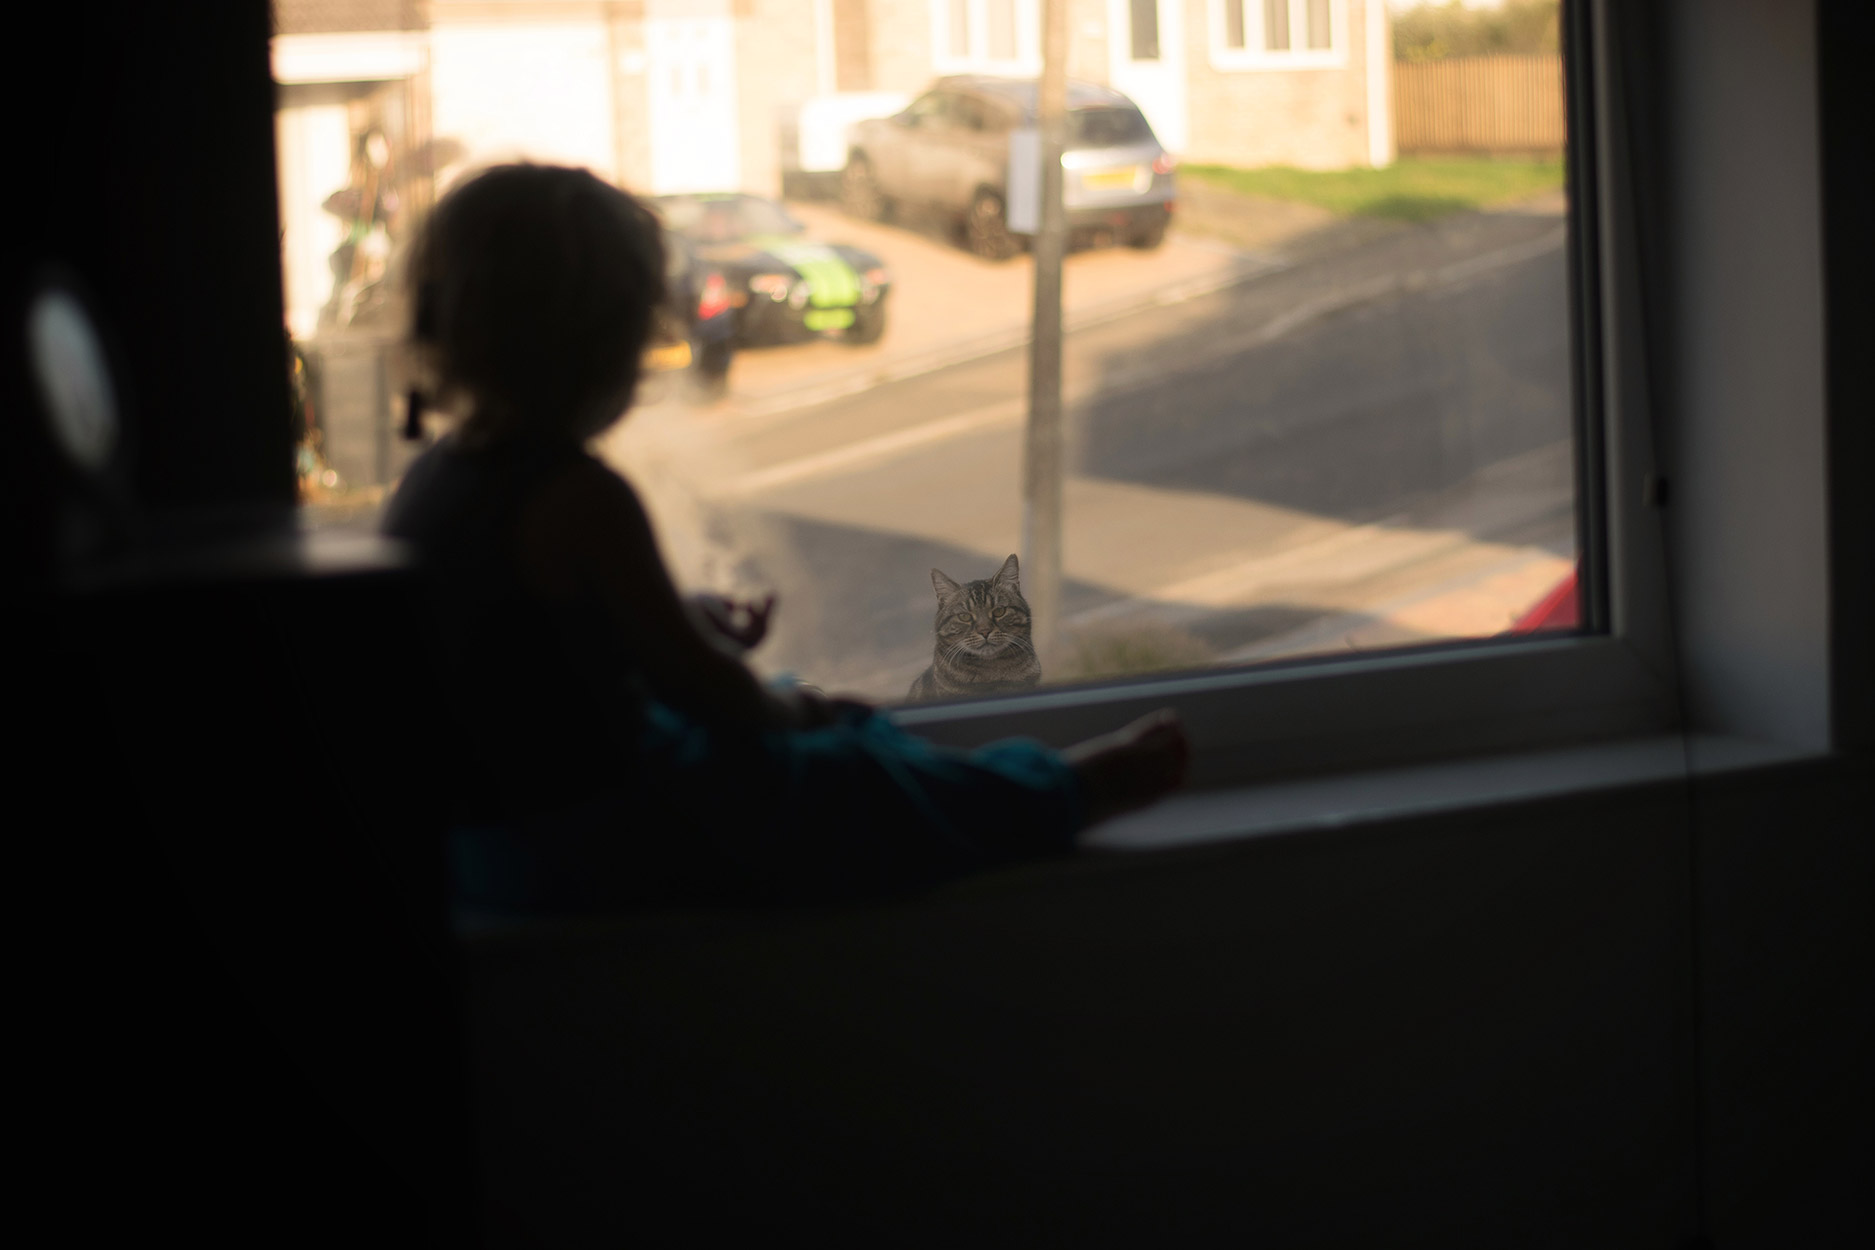 Toddler sitting on window sill looking at neighbour's cat sitting on the garage outside in the street